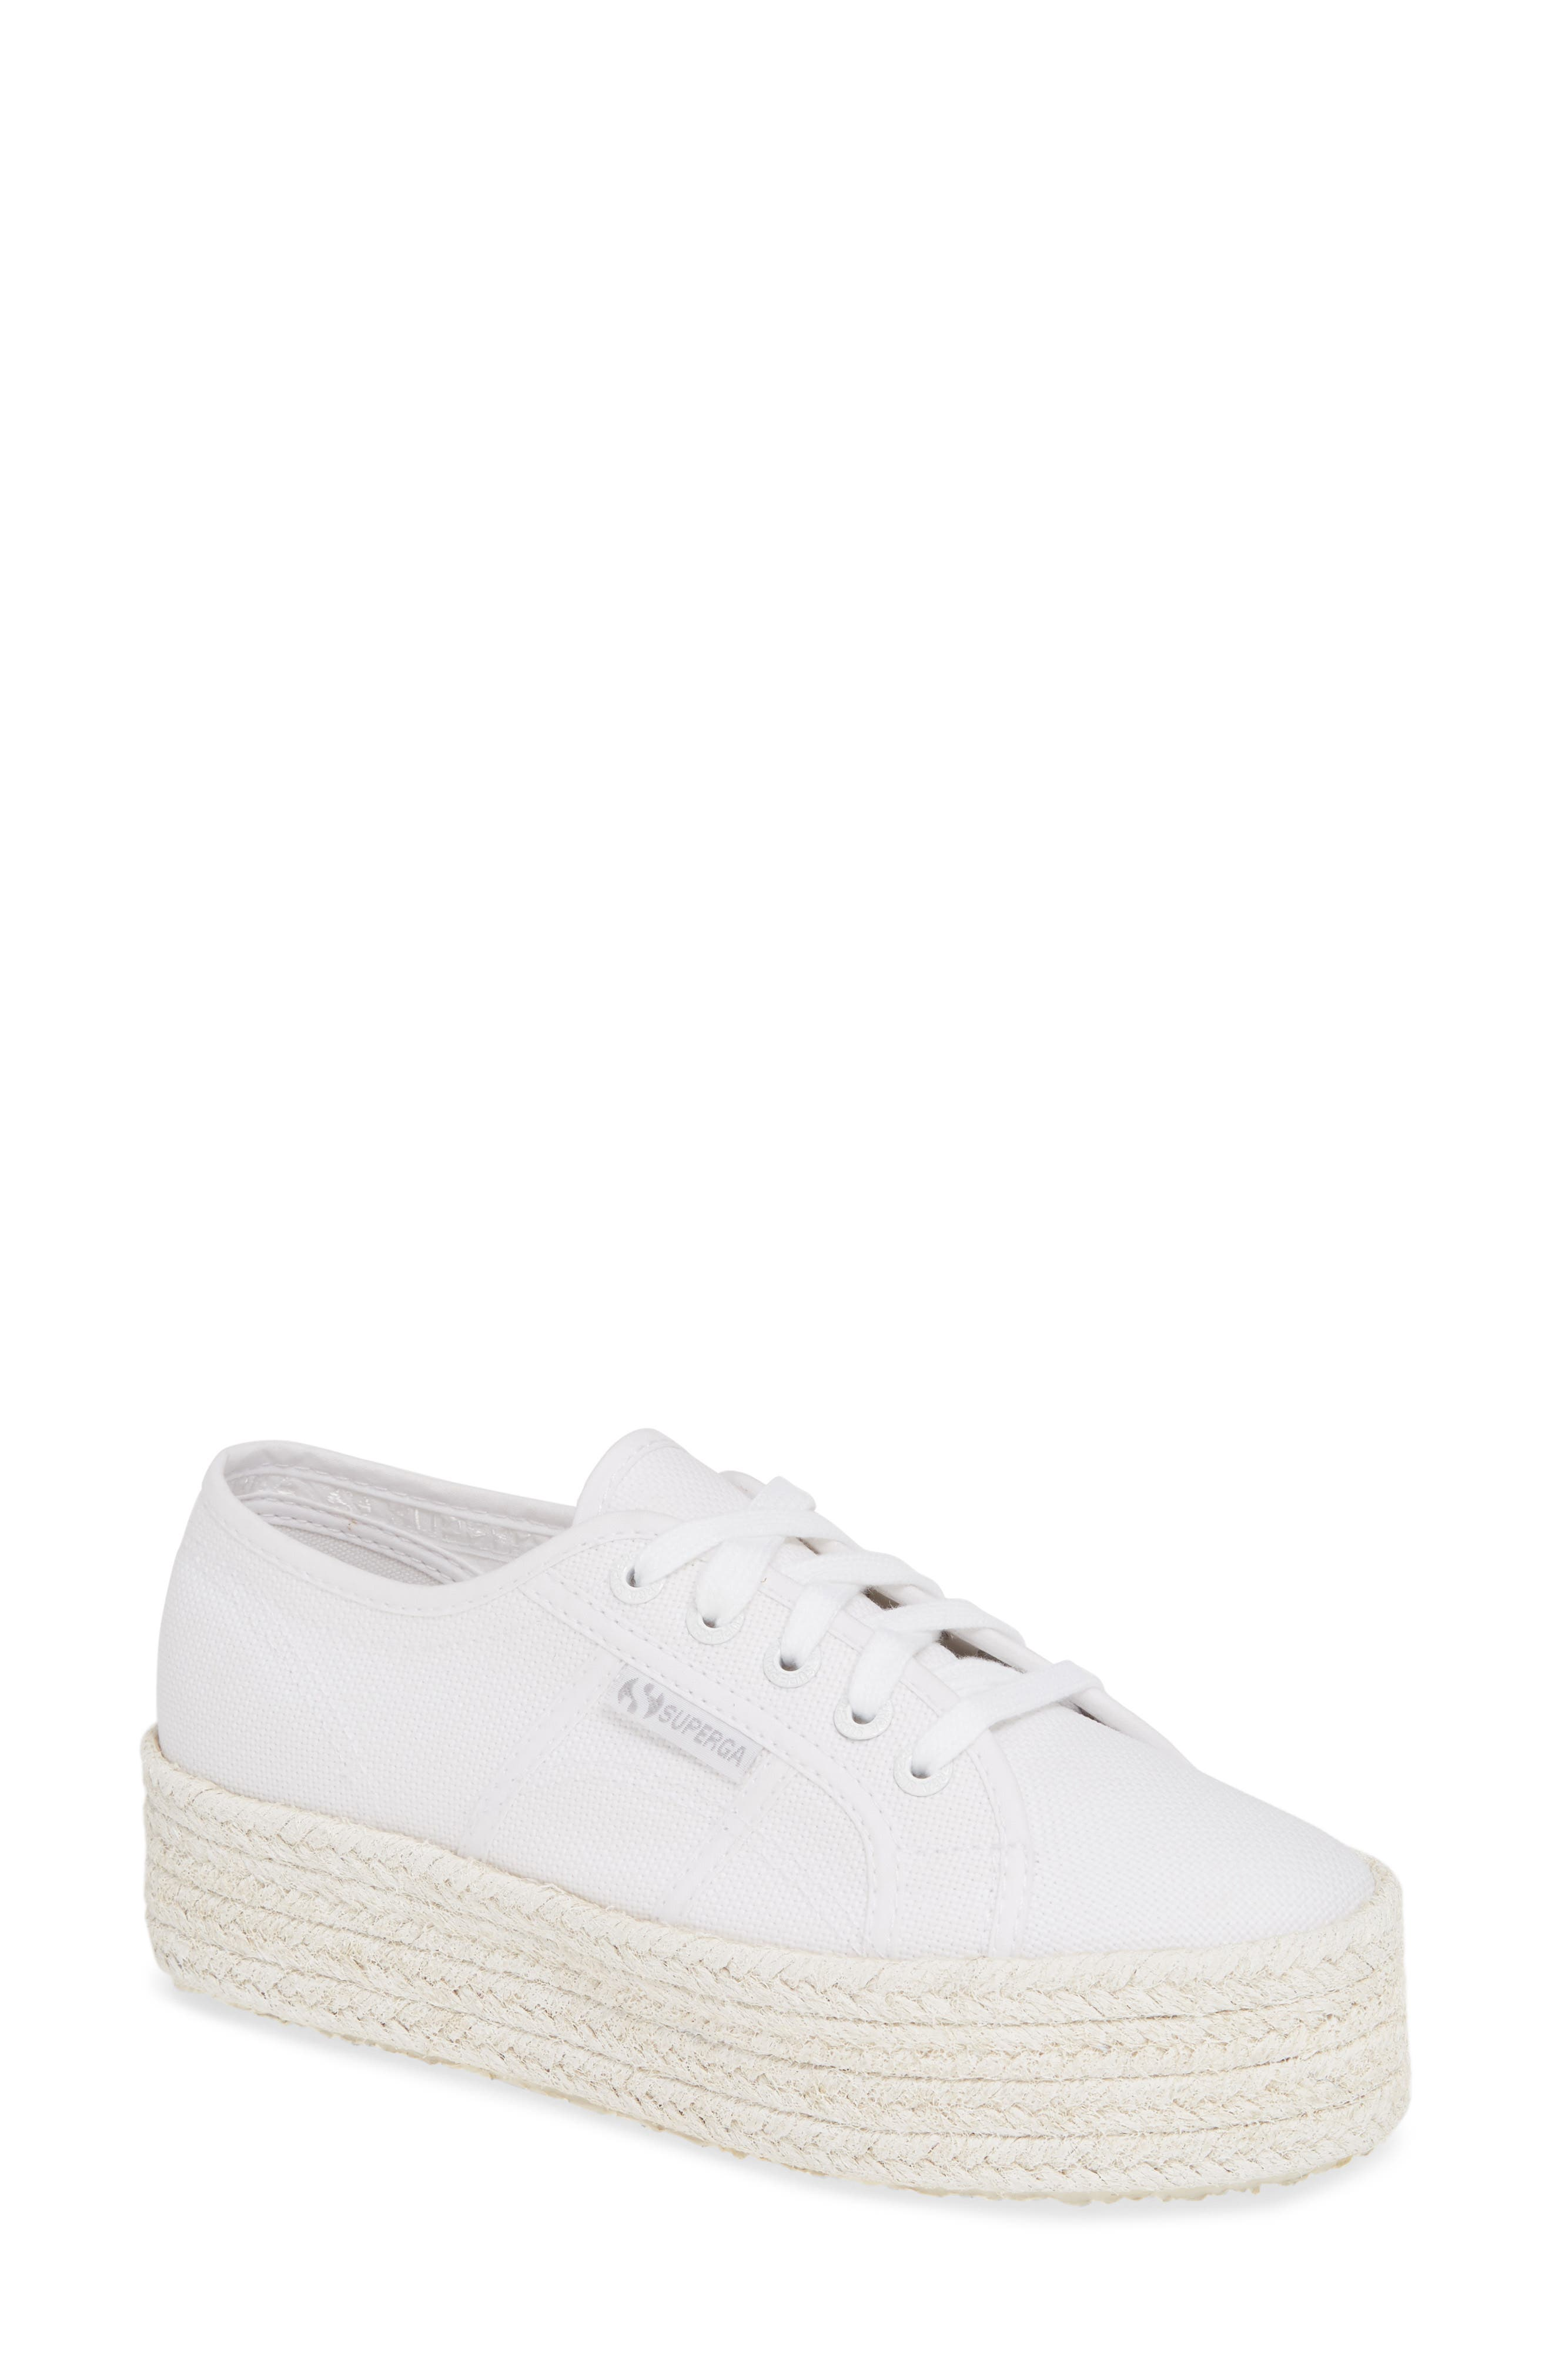 Superga Shoes Cotcoloropew Espadrille Sneaker